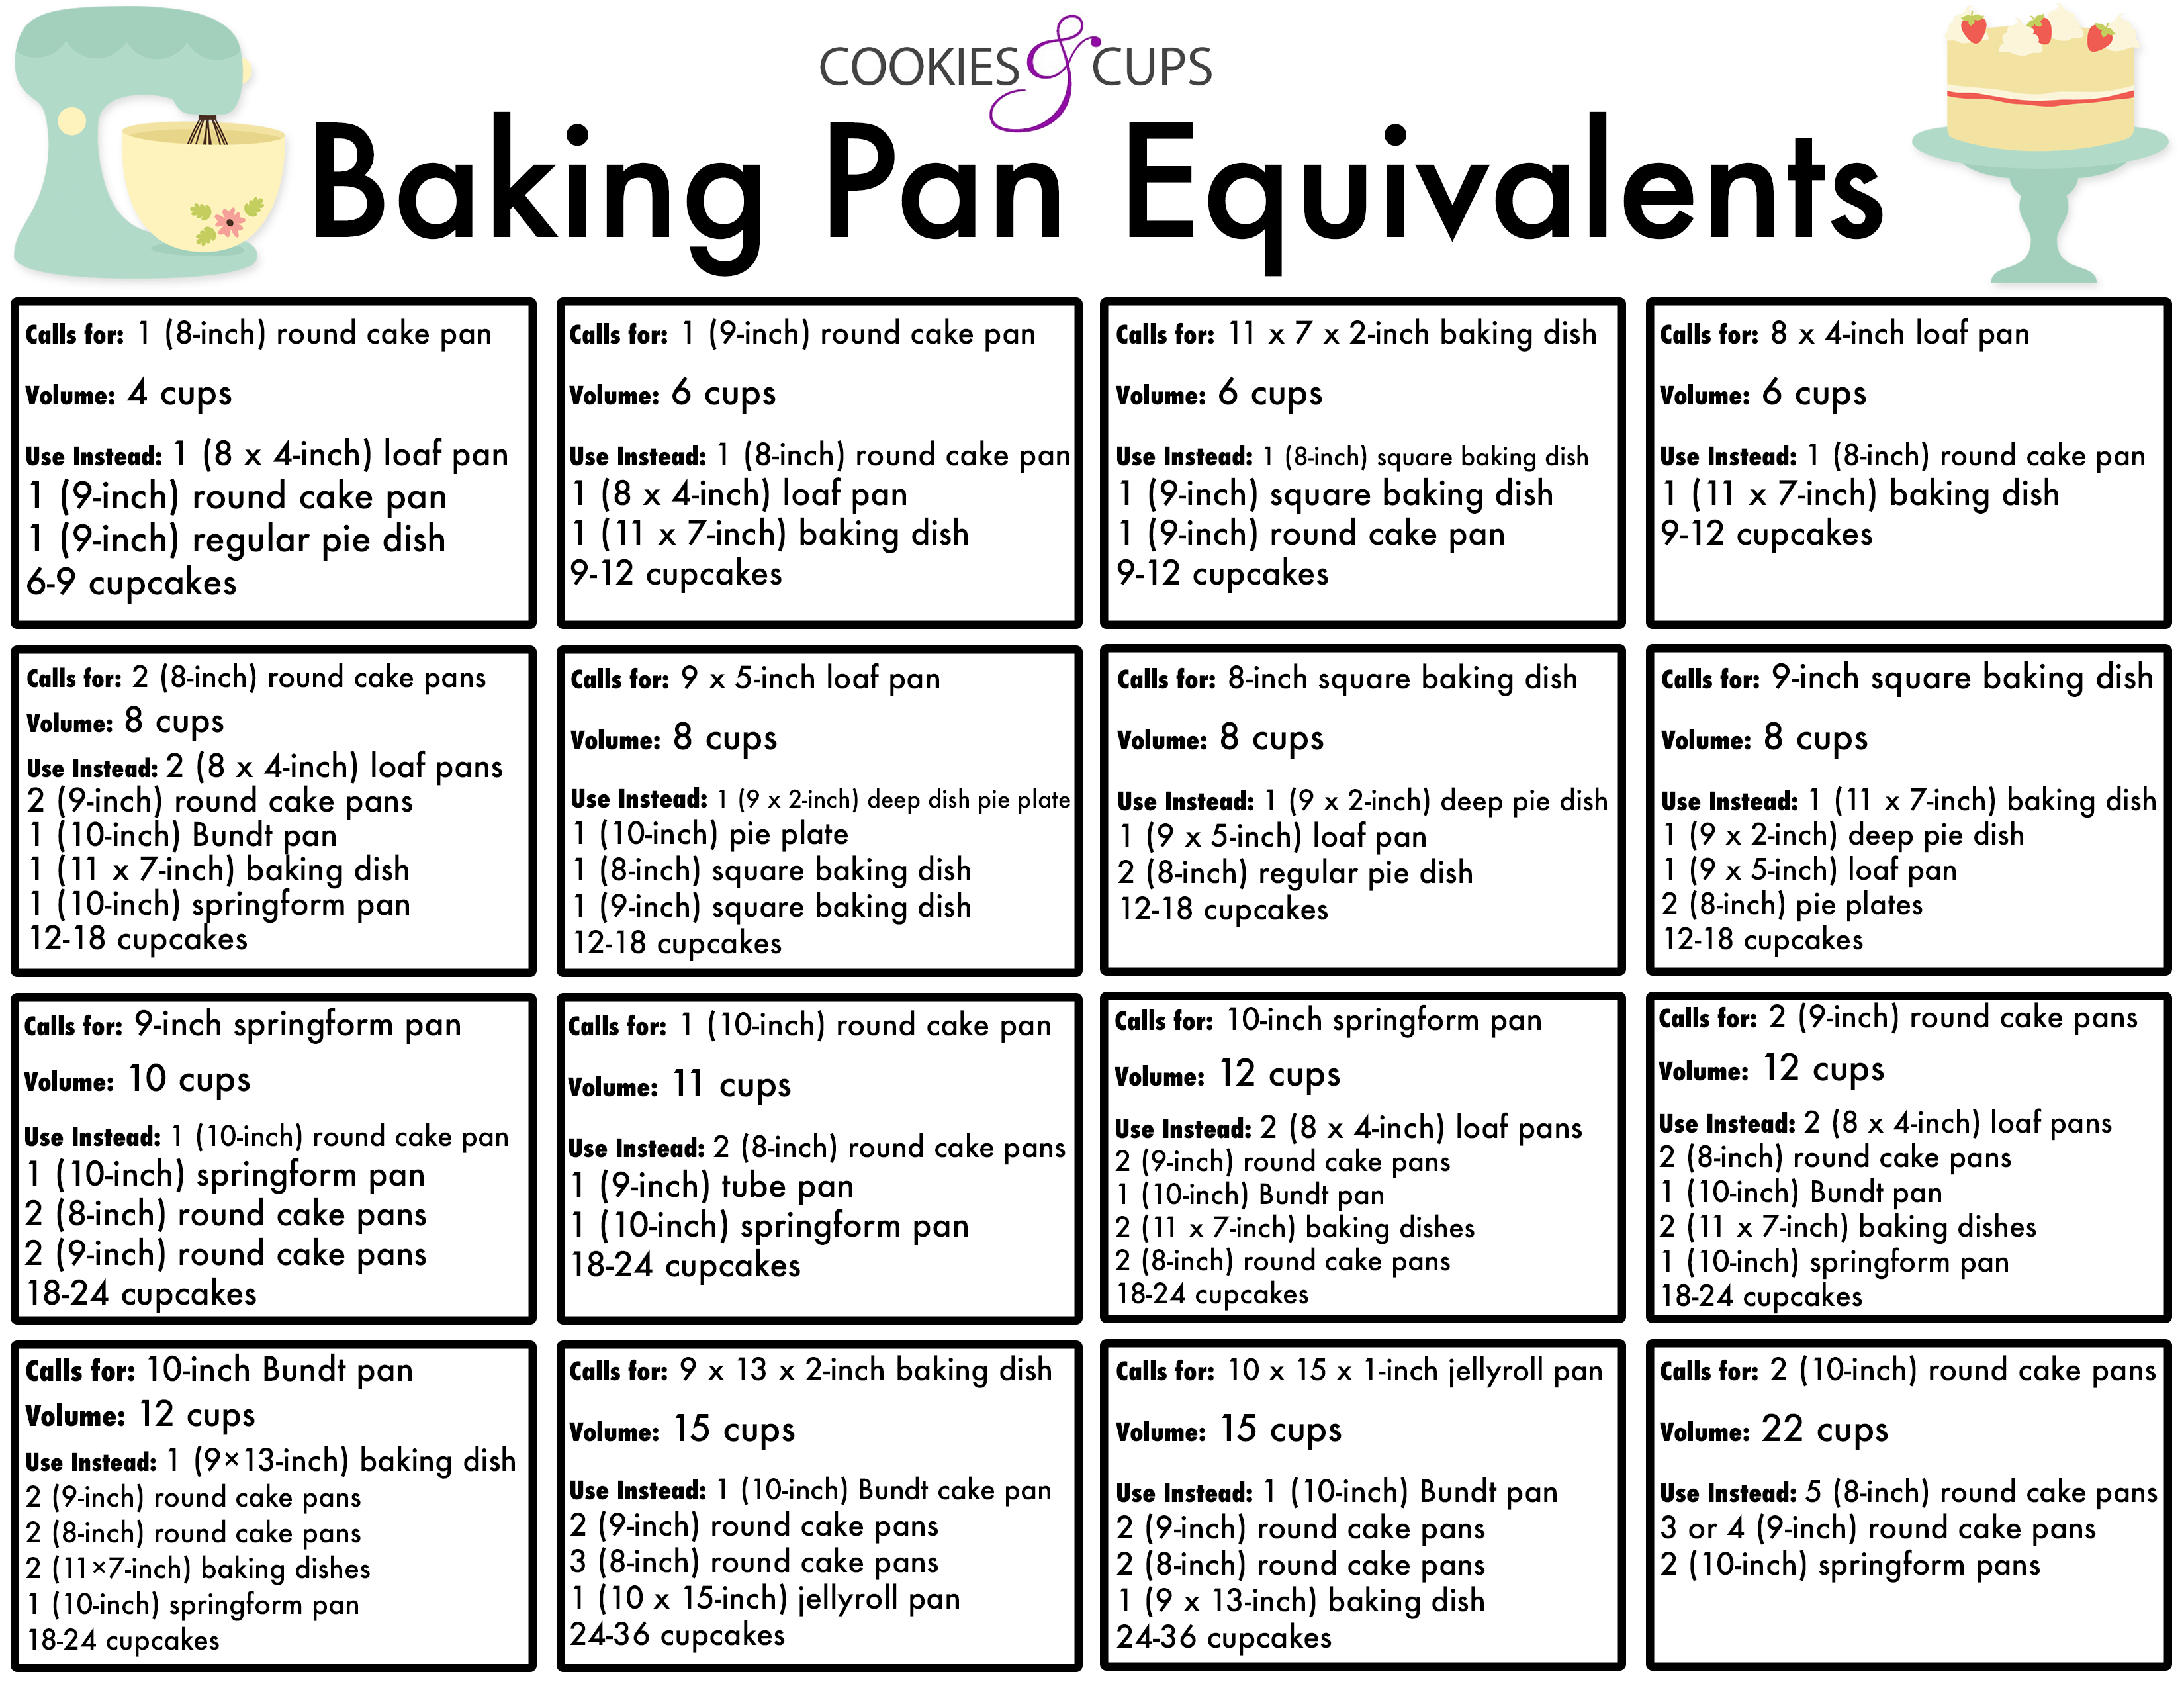 Baking pan equivalents cookies and cups baking pan equivalent chart all you need to know when you want to use a nvjuhfo Images